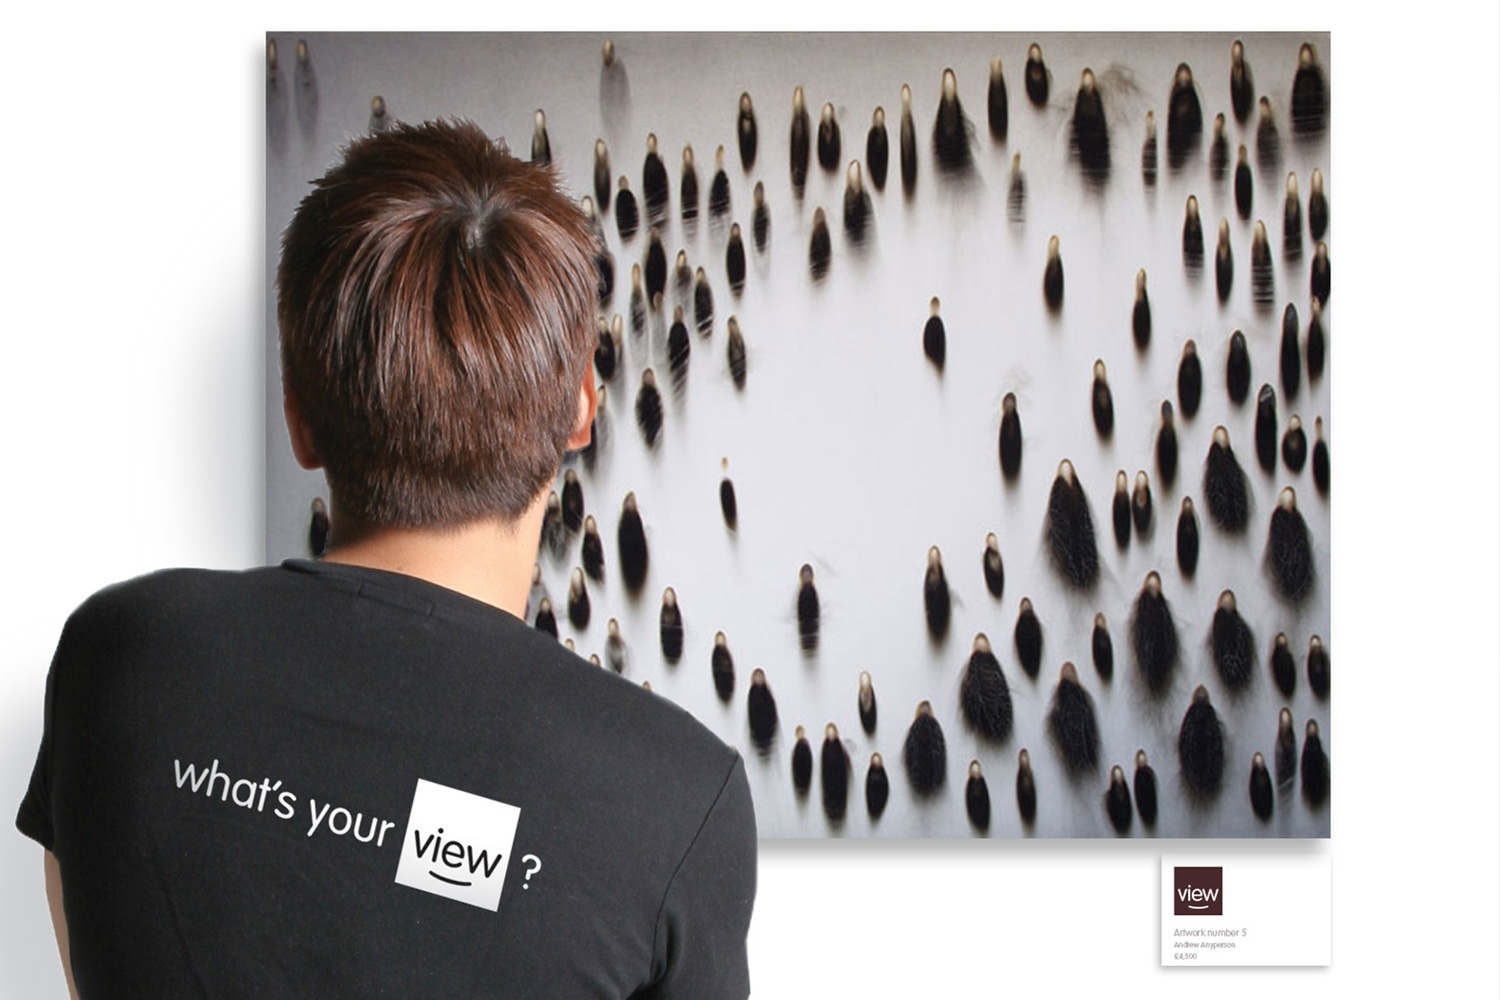 View Art Gallery brand positioning